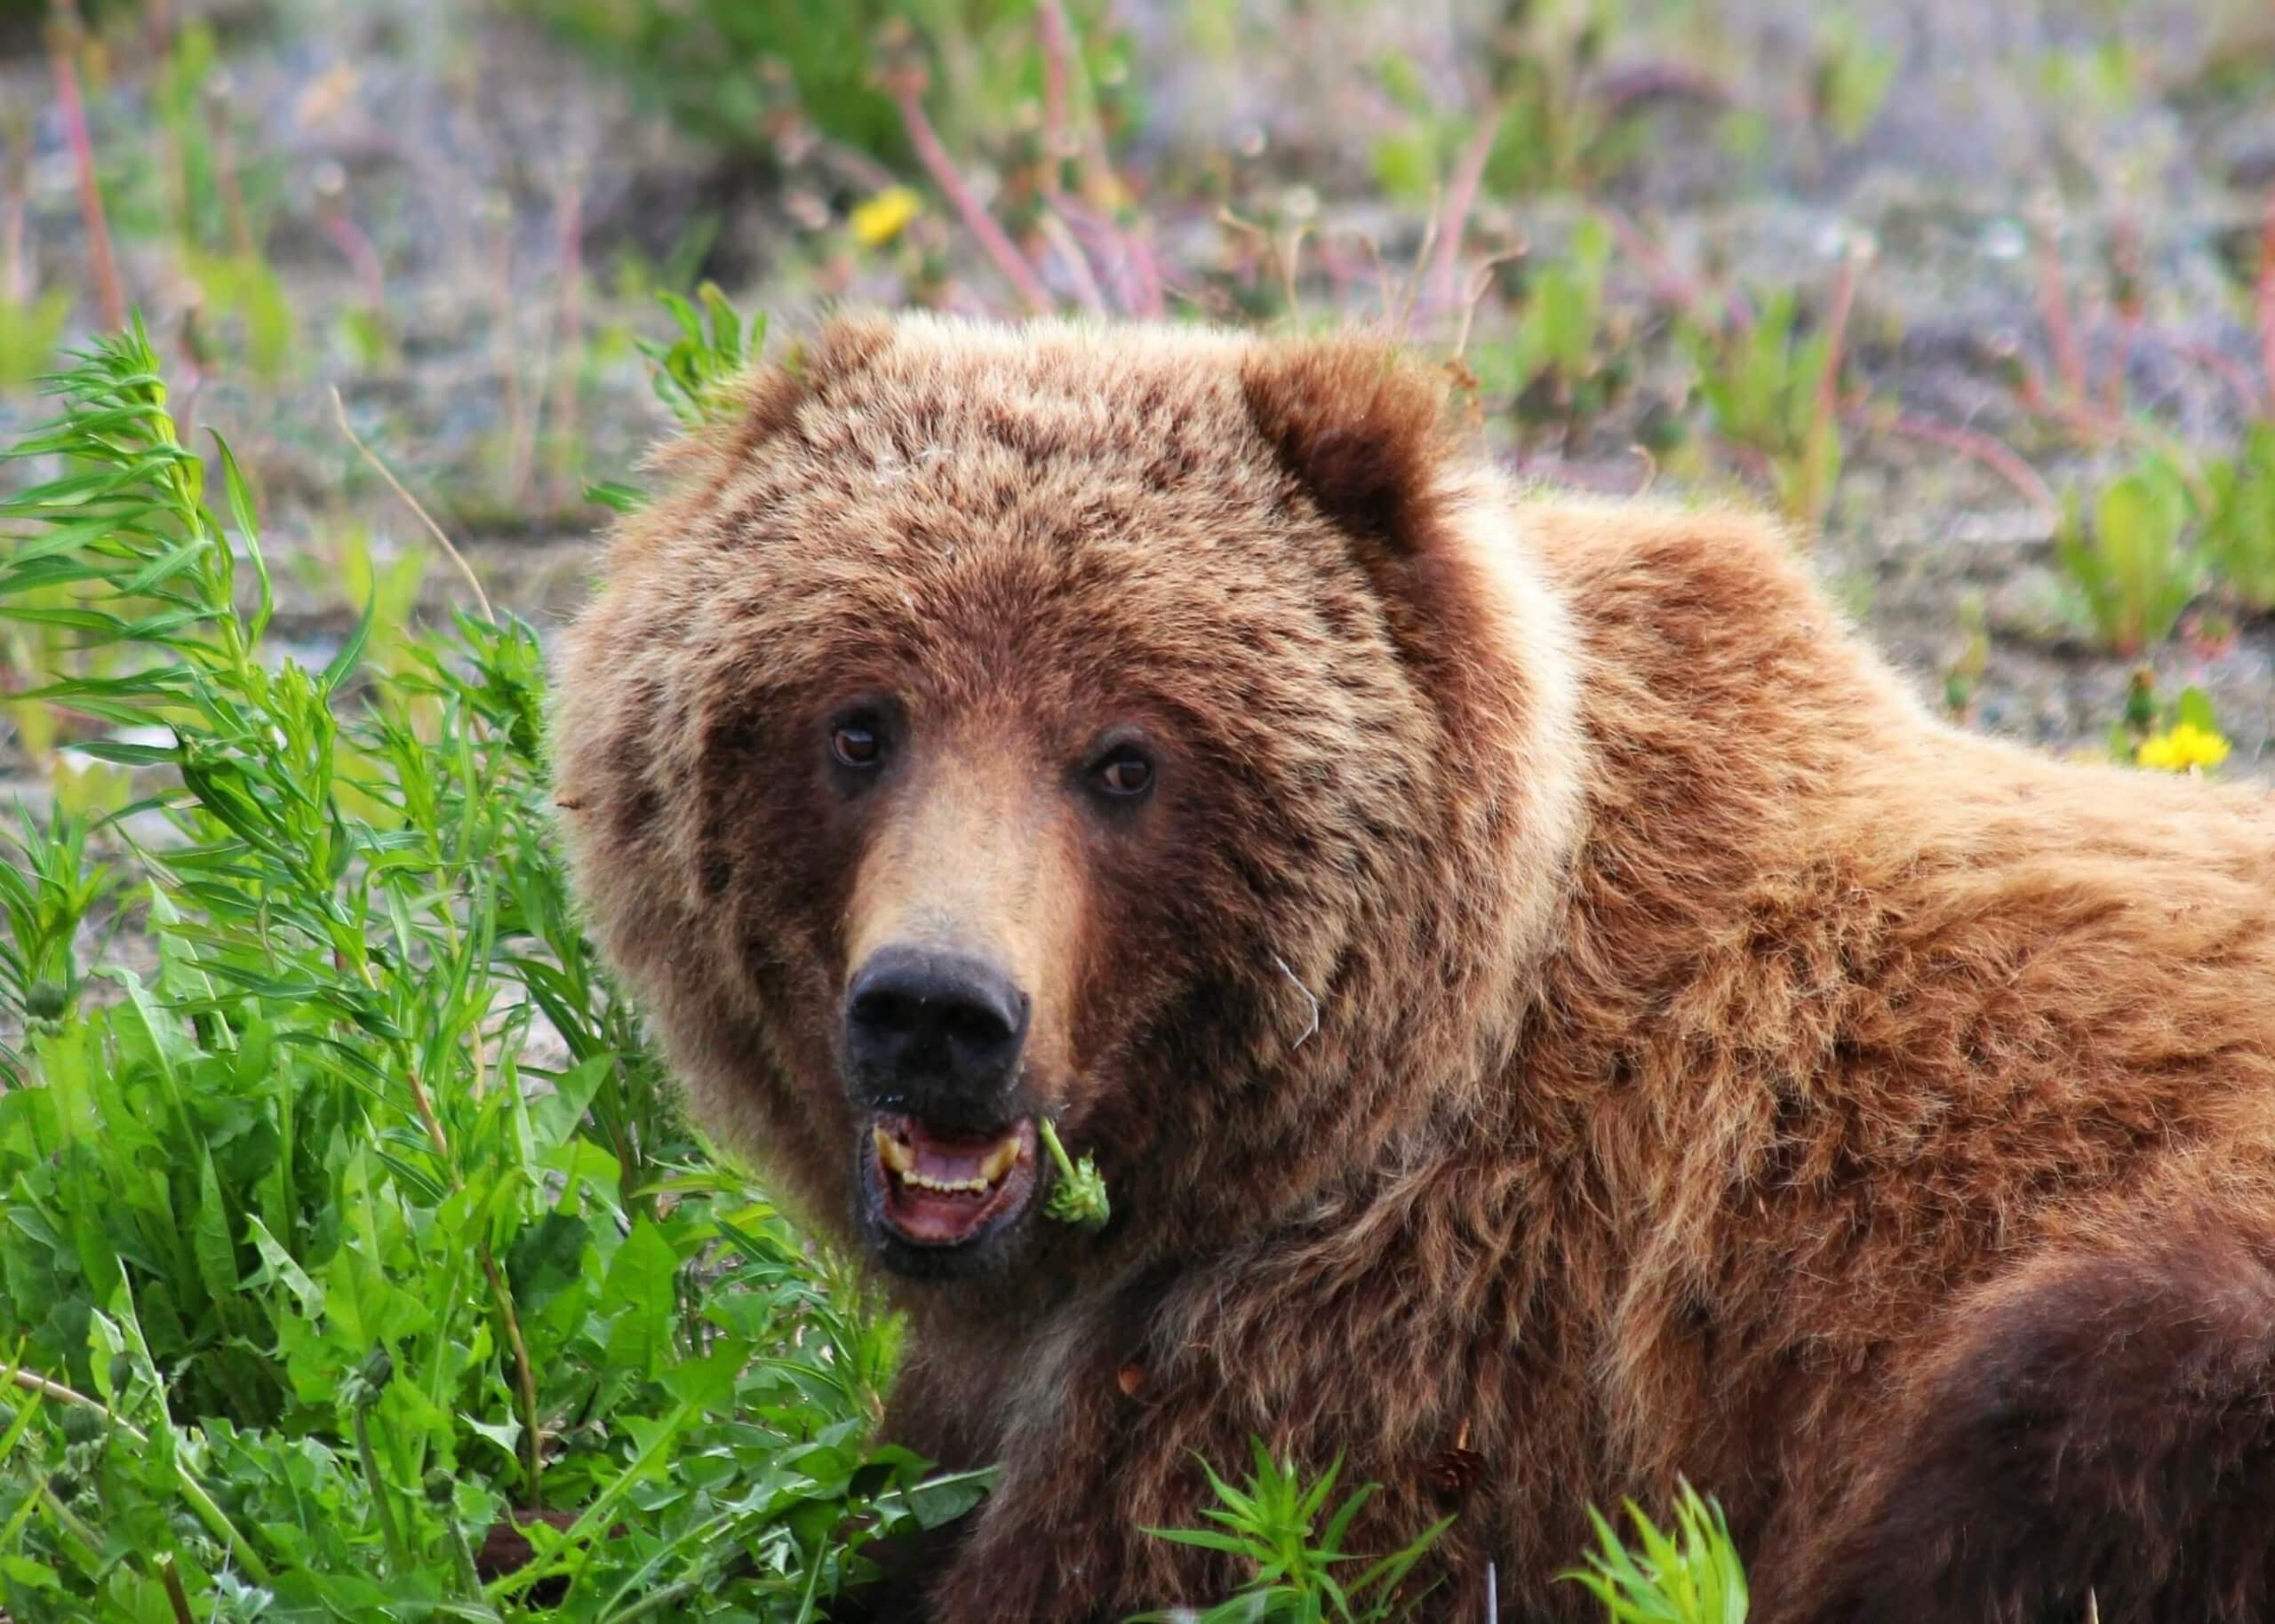 Brown and blonde grizzly bear resting while eating dandelion greens